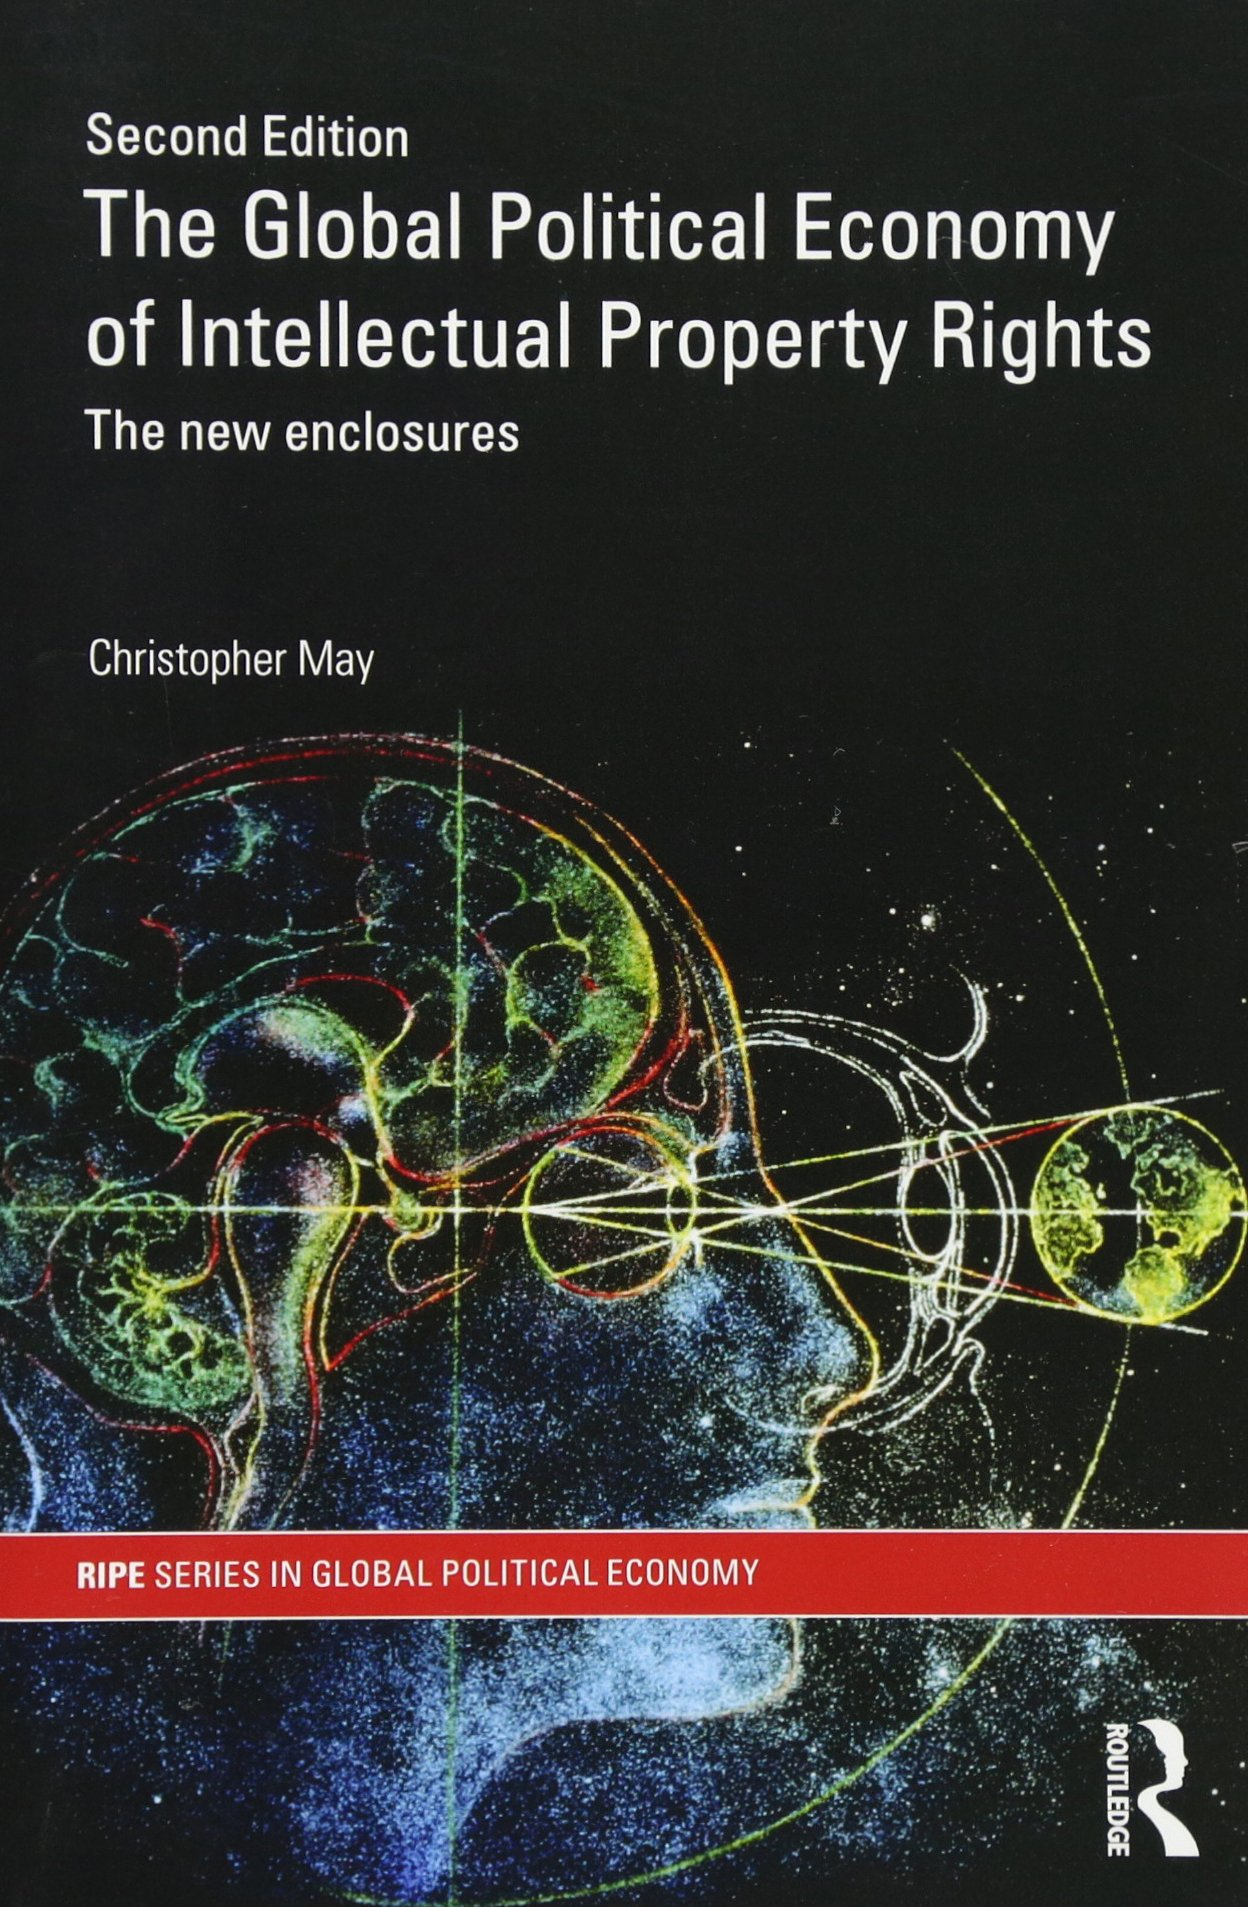 Resisting Intellectual Property (RIPE Series in Global Political Economy)